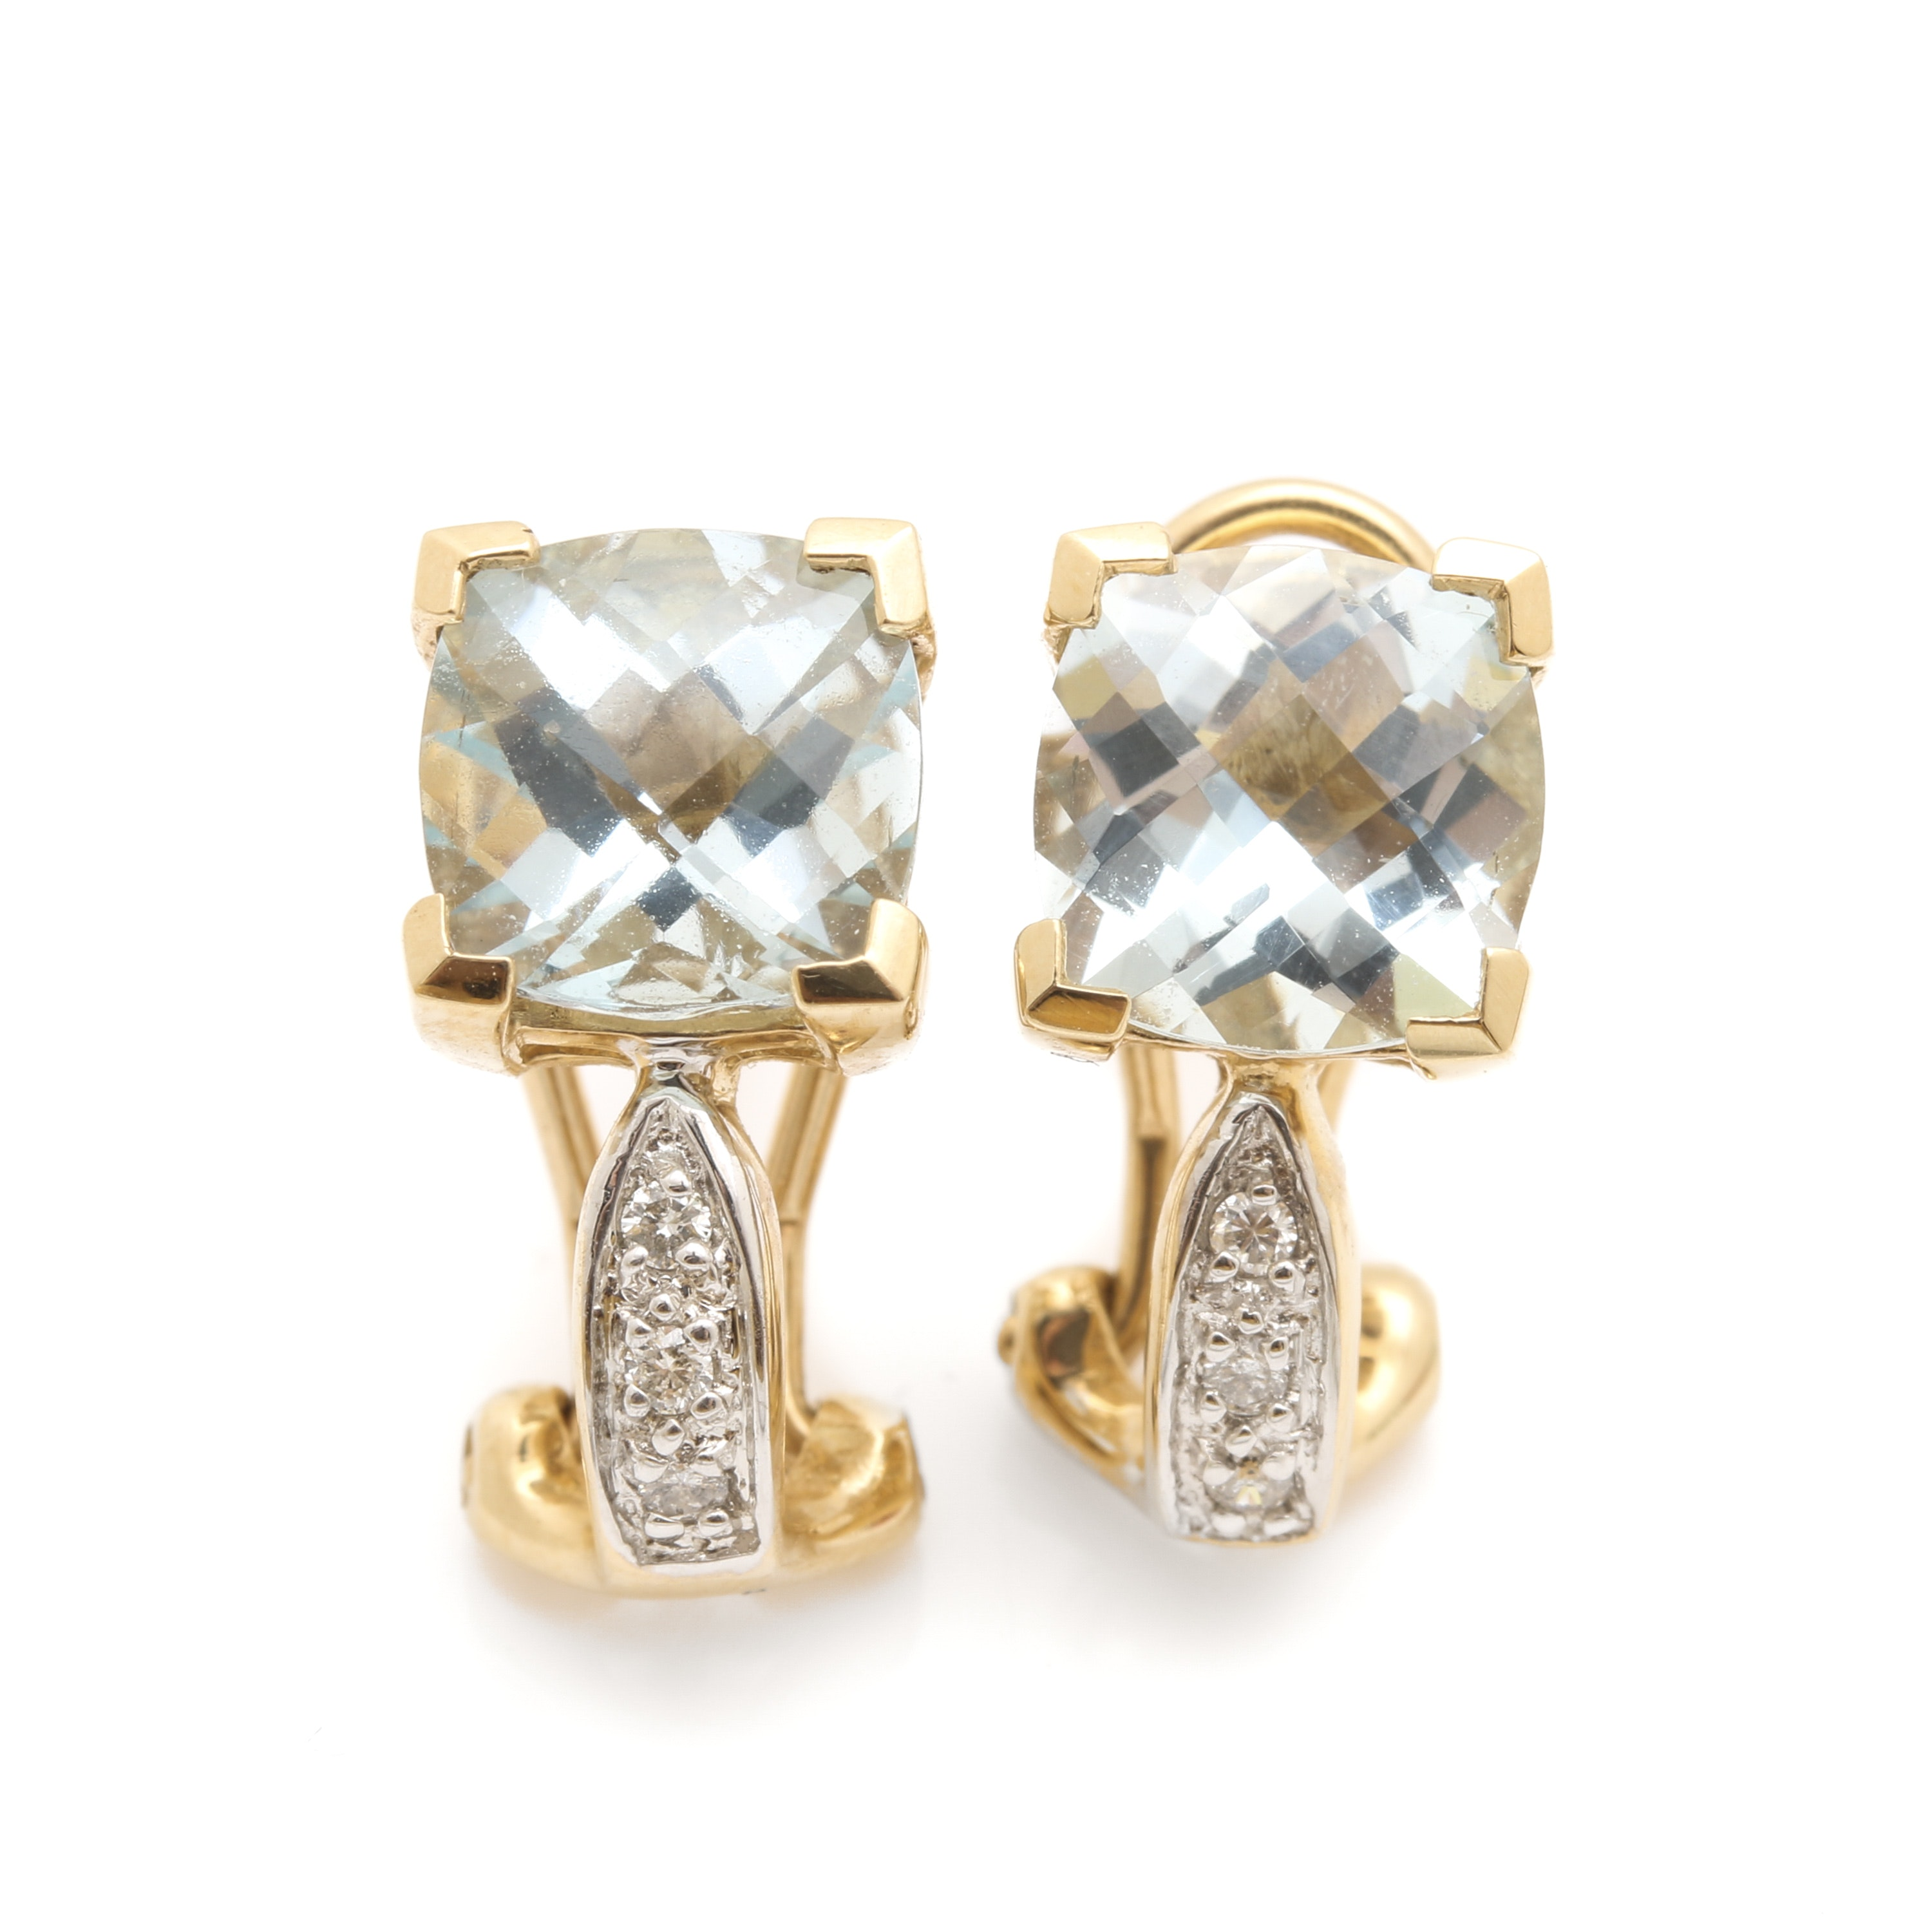 Effy Jewelry 14K Yellow Gold Aquamarine and Diamond Earrings